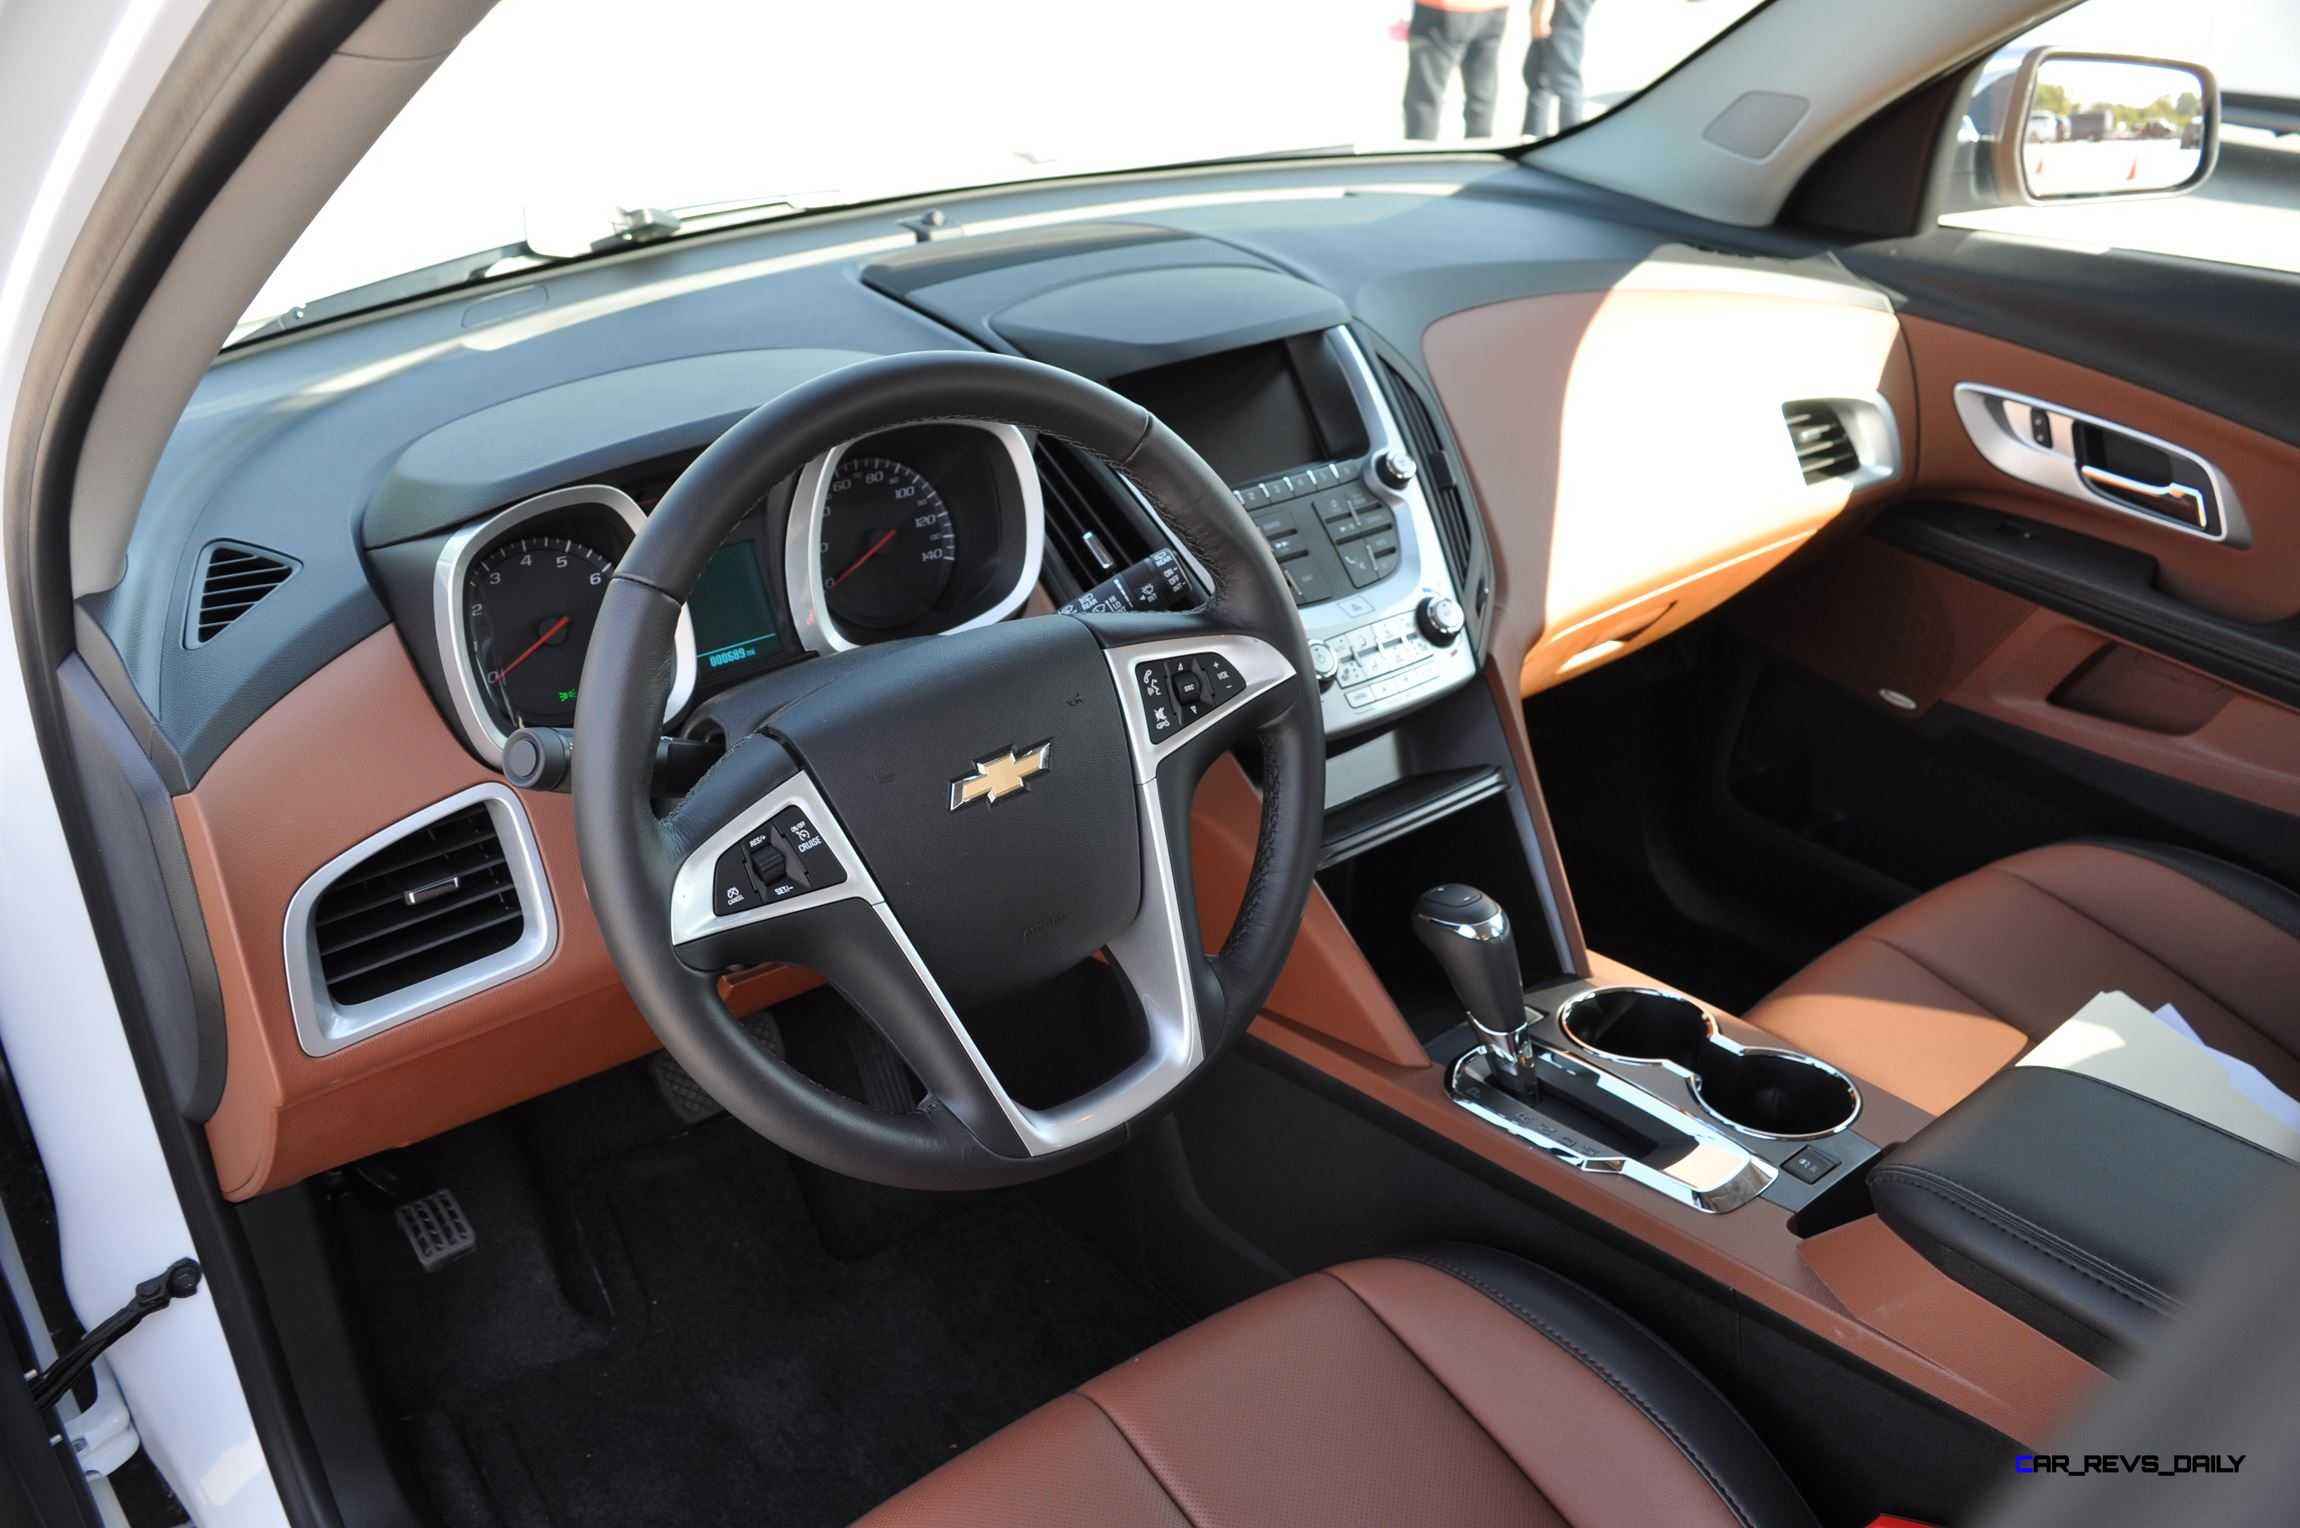 2016 Chevrolet EQUINOX LTZ Interior Saddle Brown 1